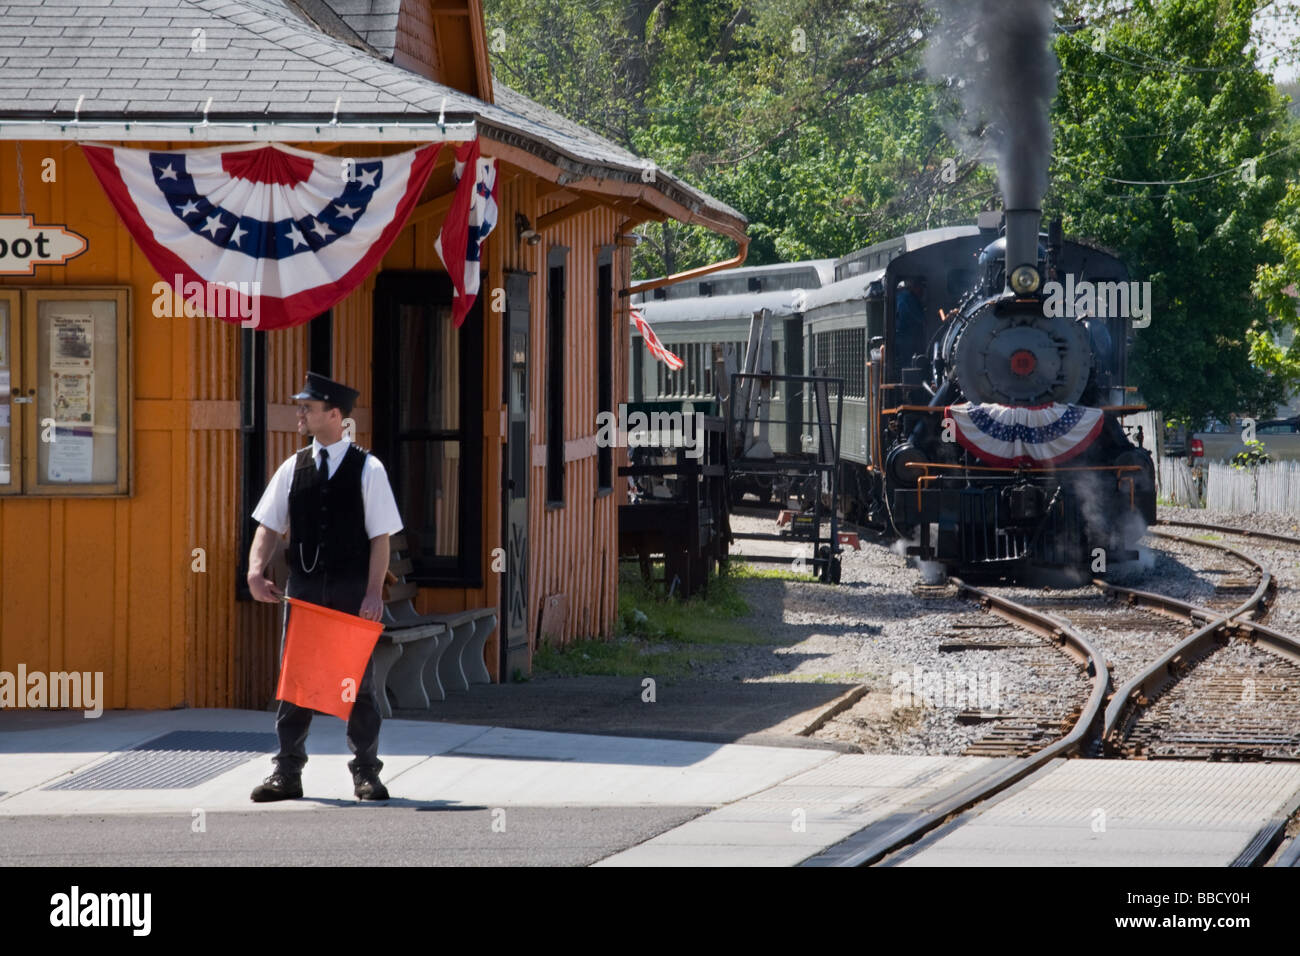 Steam excursion train Arcade and Attica Railroad leaving Arcade in western New York Wyoming County Stock Photo